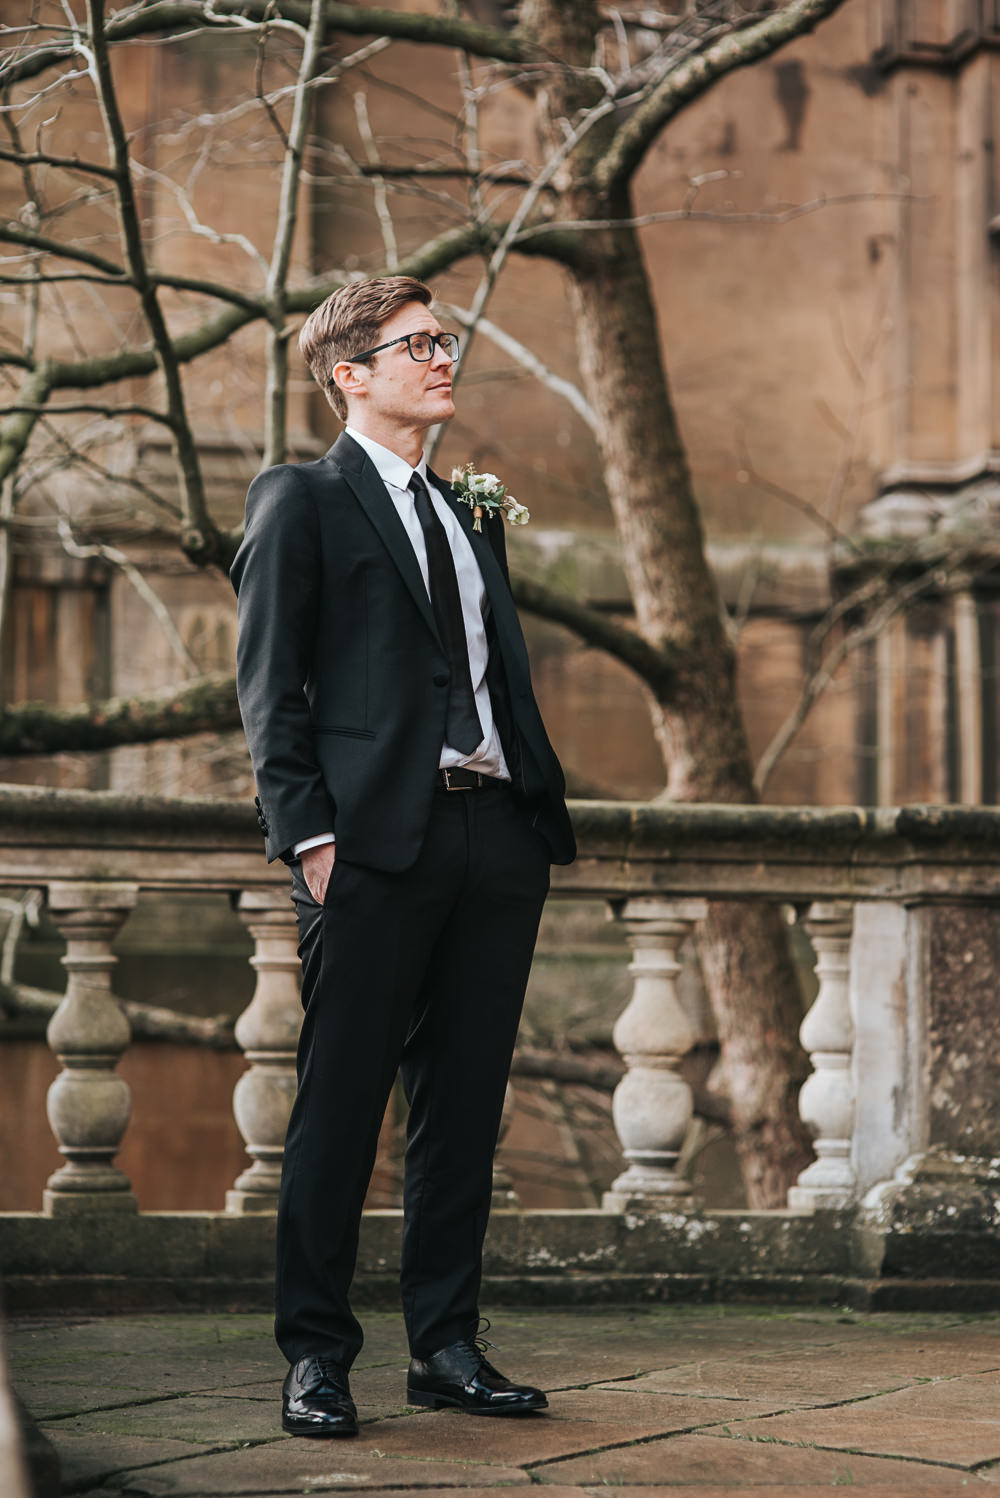 Groom Suit Black Tie Shoes Wollaton Hall Wedding Pear and Bear Photography